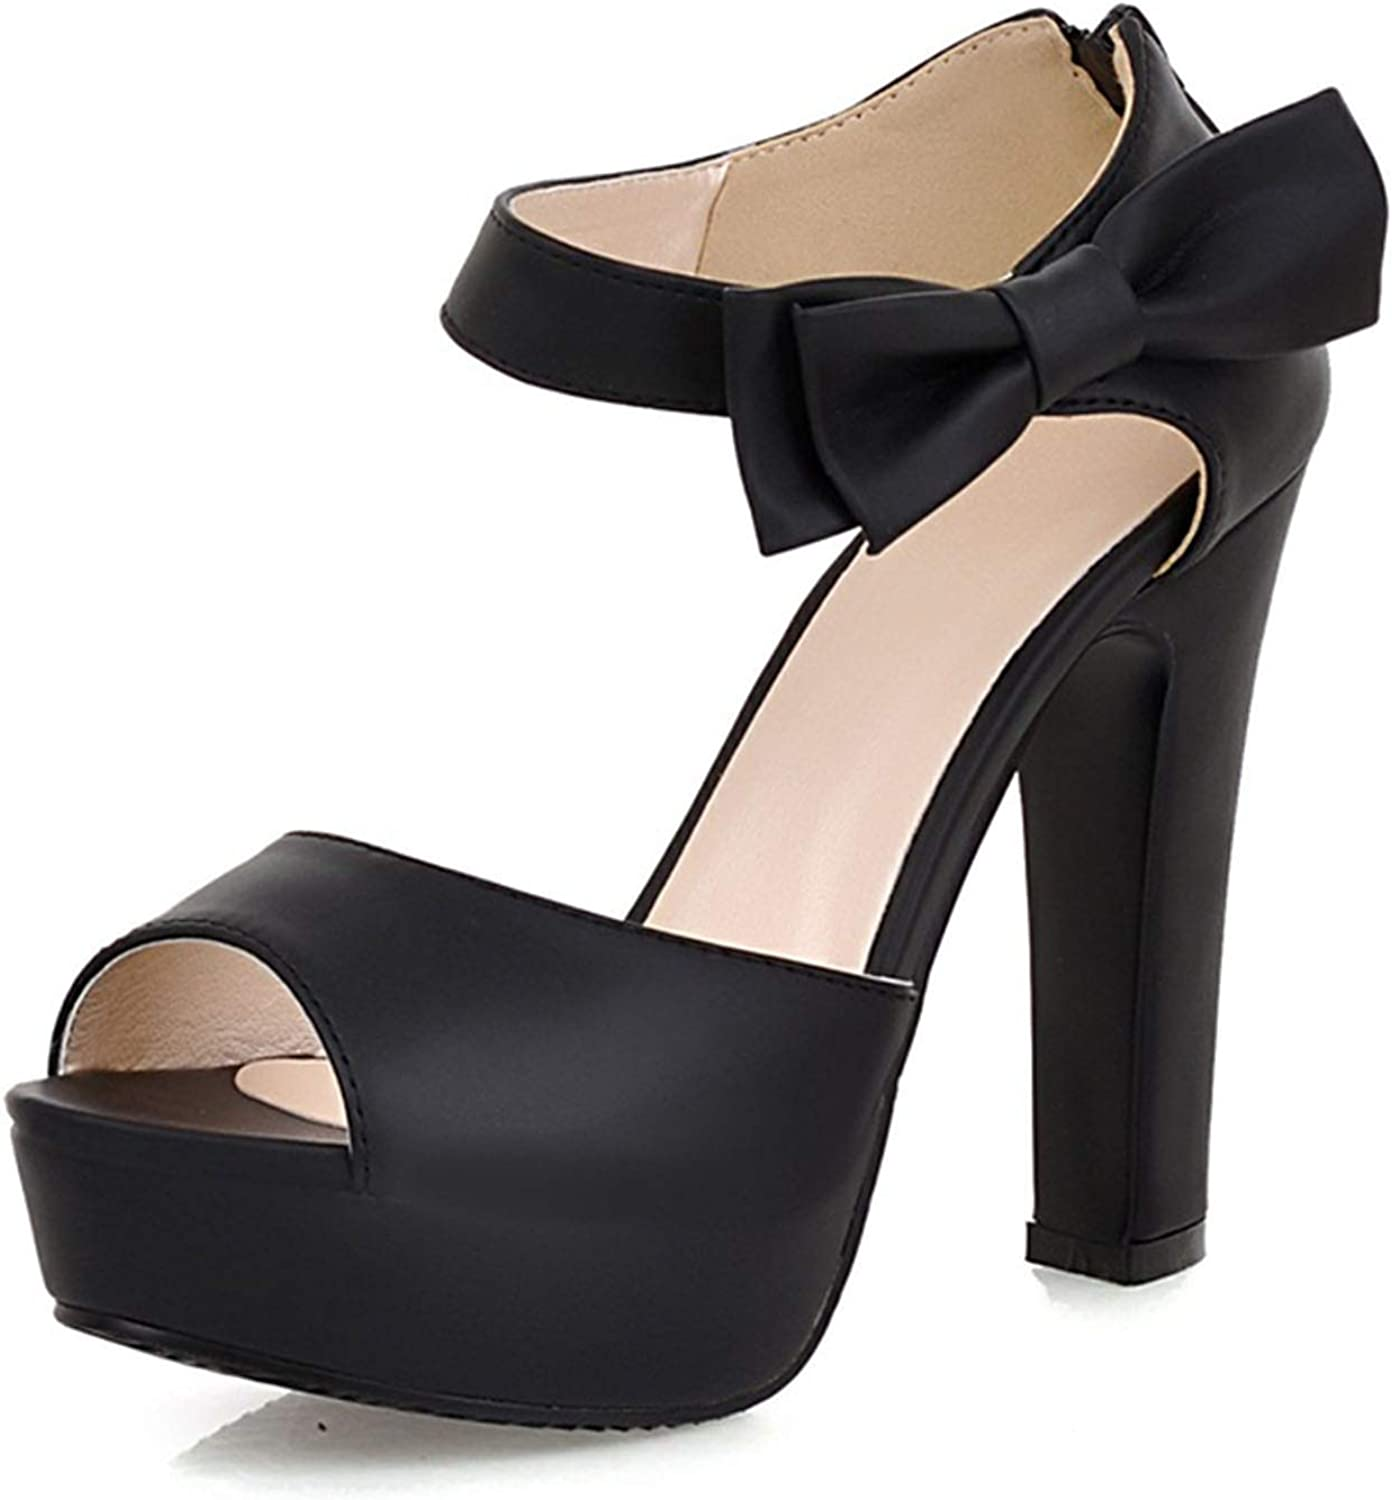 Fairly New Summer Peep Toe Ankle Strap Sweet Thick High Heel Platform Lady shoes,Black,7